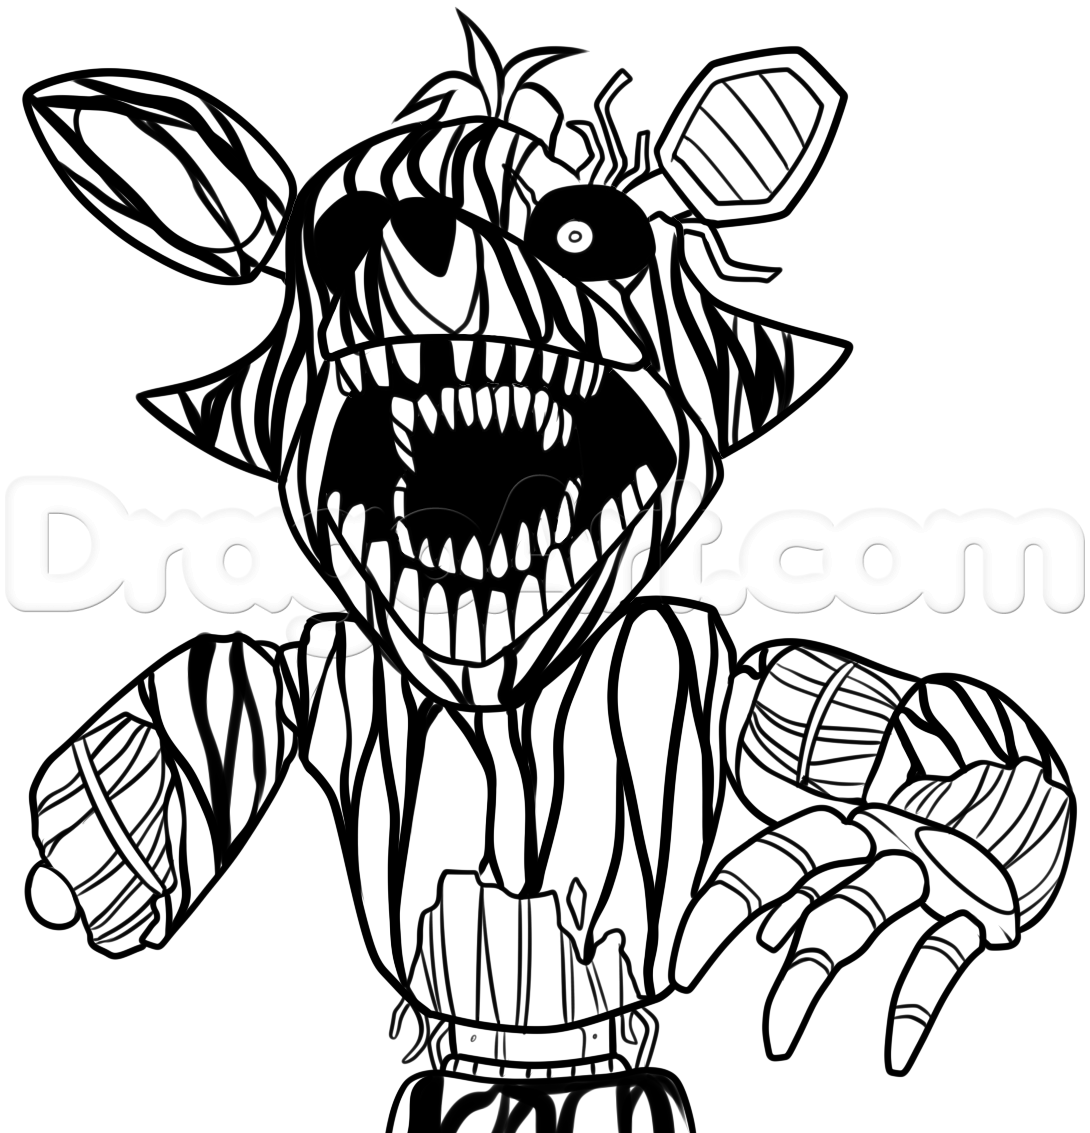 fnaf 3 coloring pages - photo#30